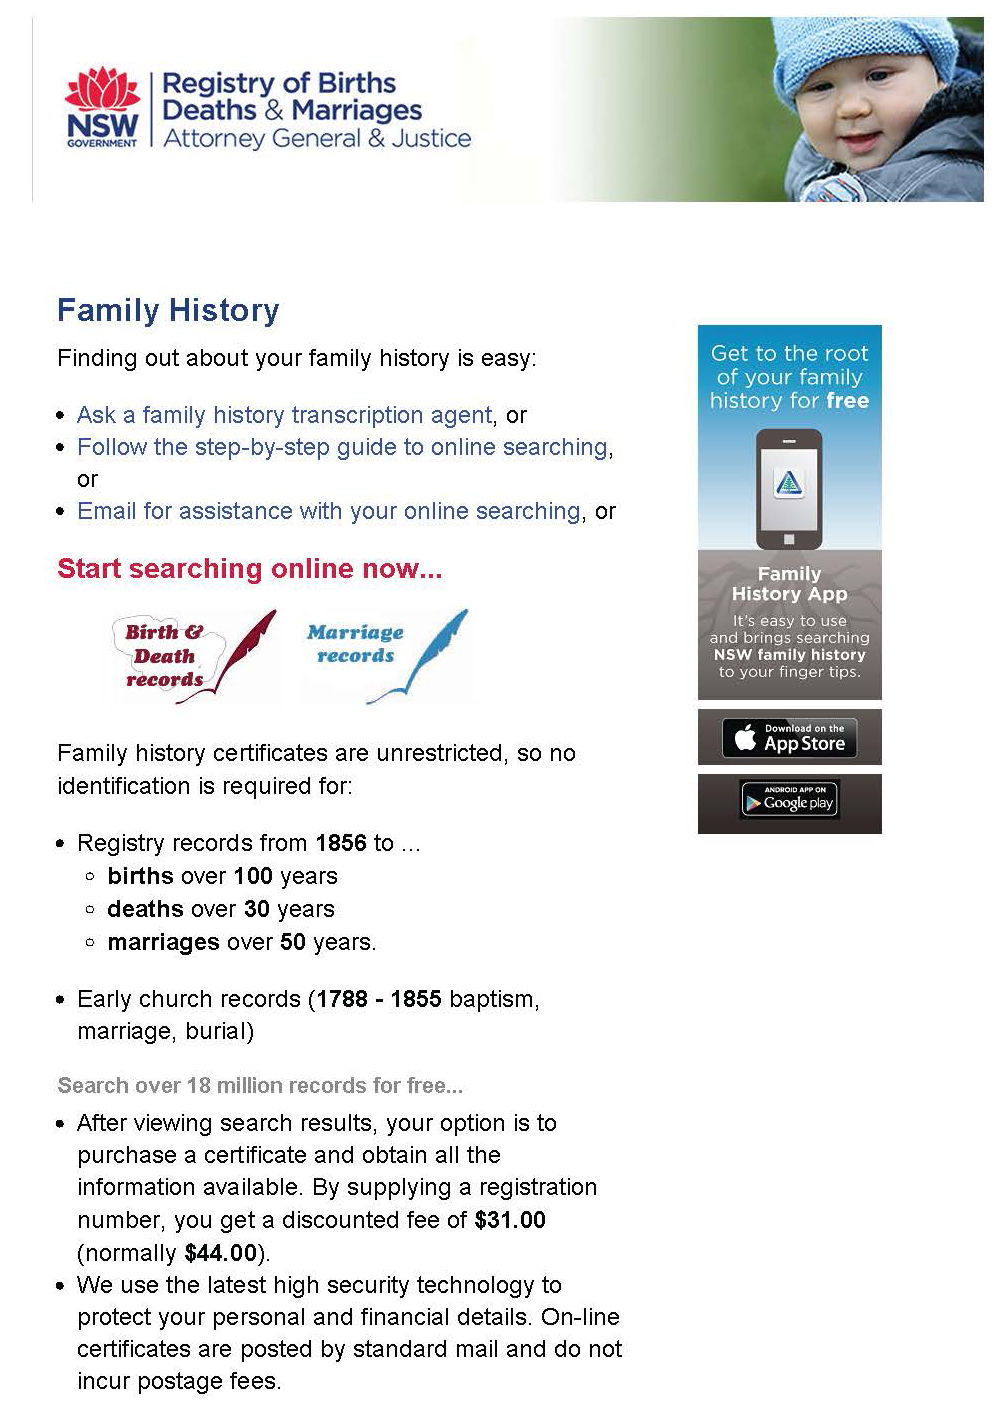 Website Wednesday - NSW Registry of Births, Deaths & Marriages